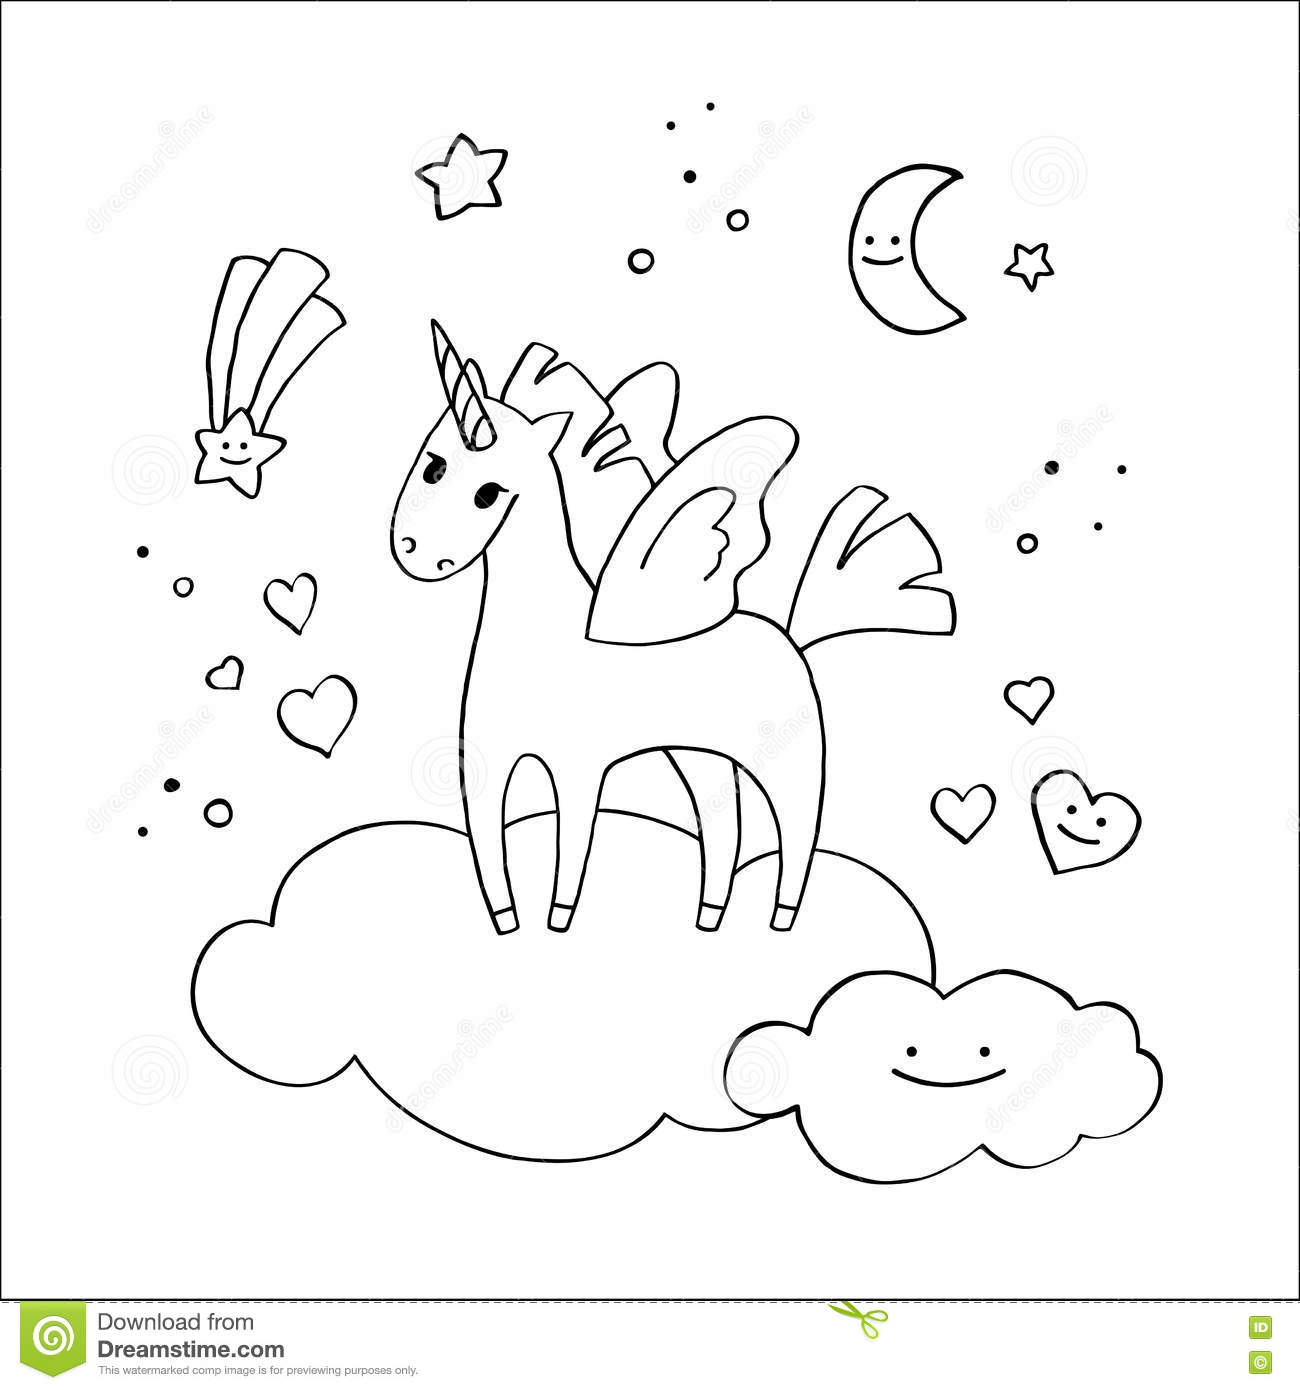 Winged Unicorn In The Clouds In Hand-drawn Style. Stock Vector ...